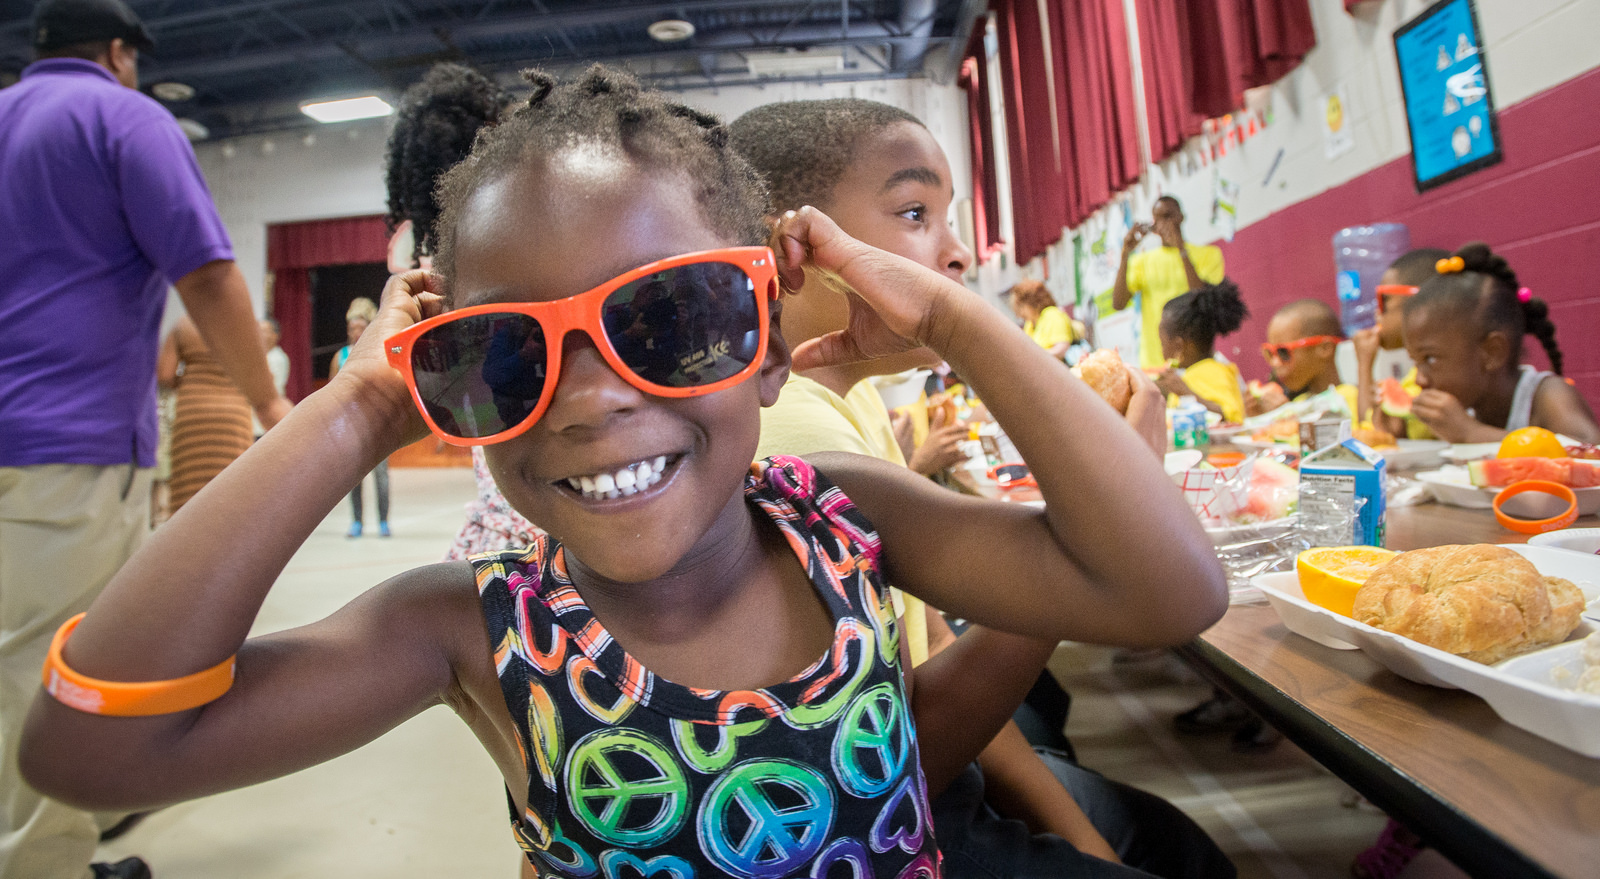 Smiling girl with orange glasses